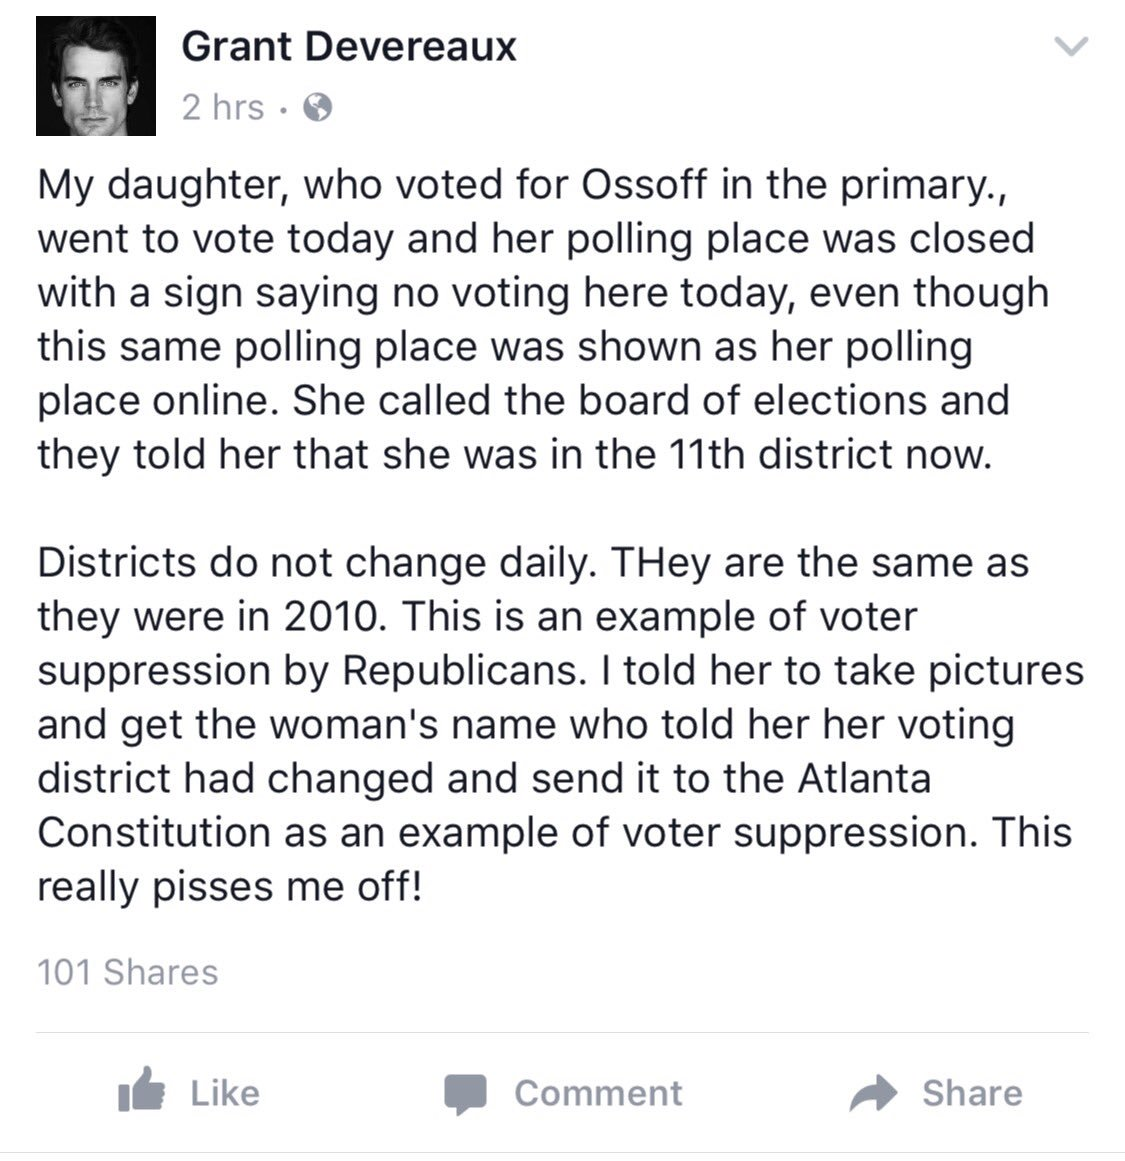 Is there voter fraud in the #GA06 election? Check out this on Facebook today @JoyAnnReid @maddow @ossoff https://t.co/p3g8cR7xVg